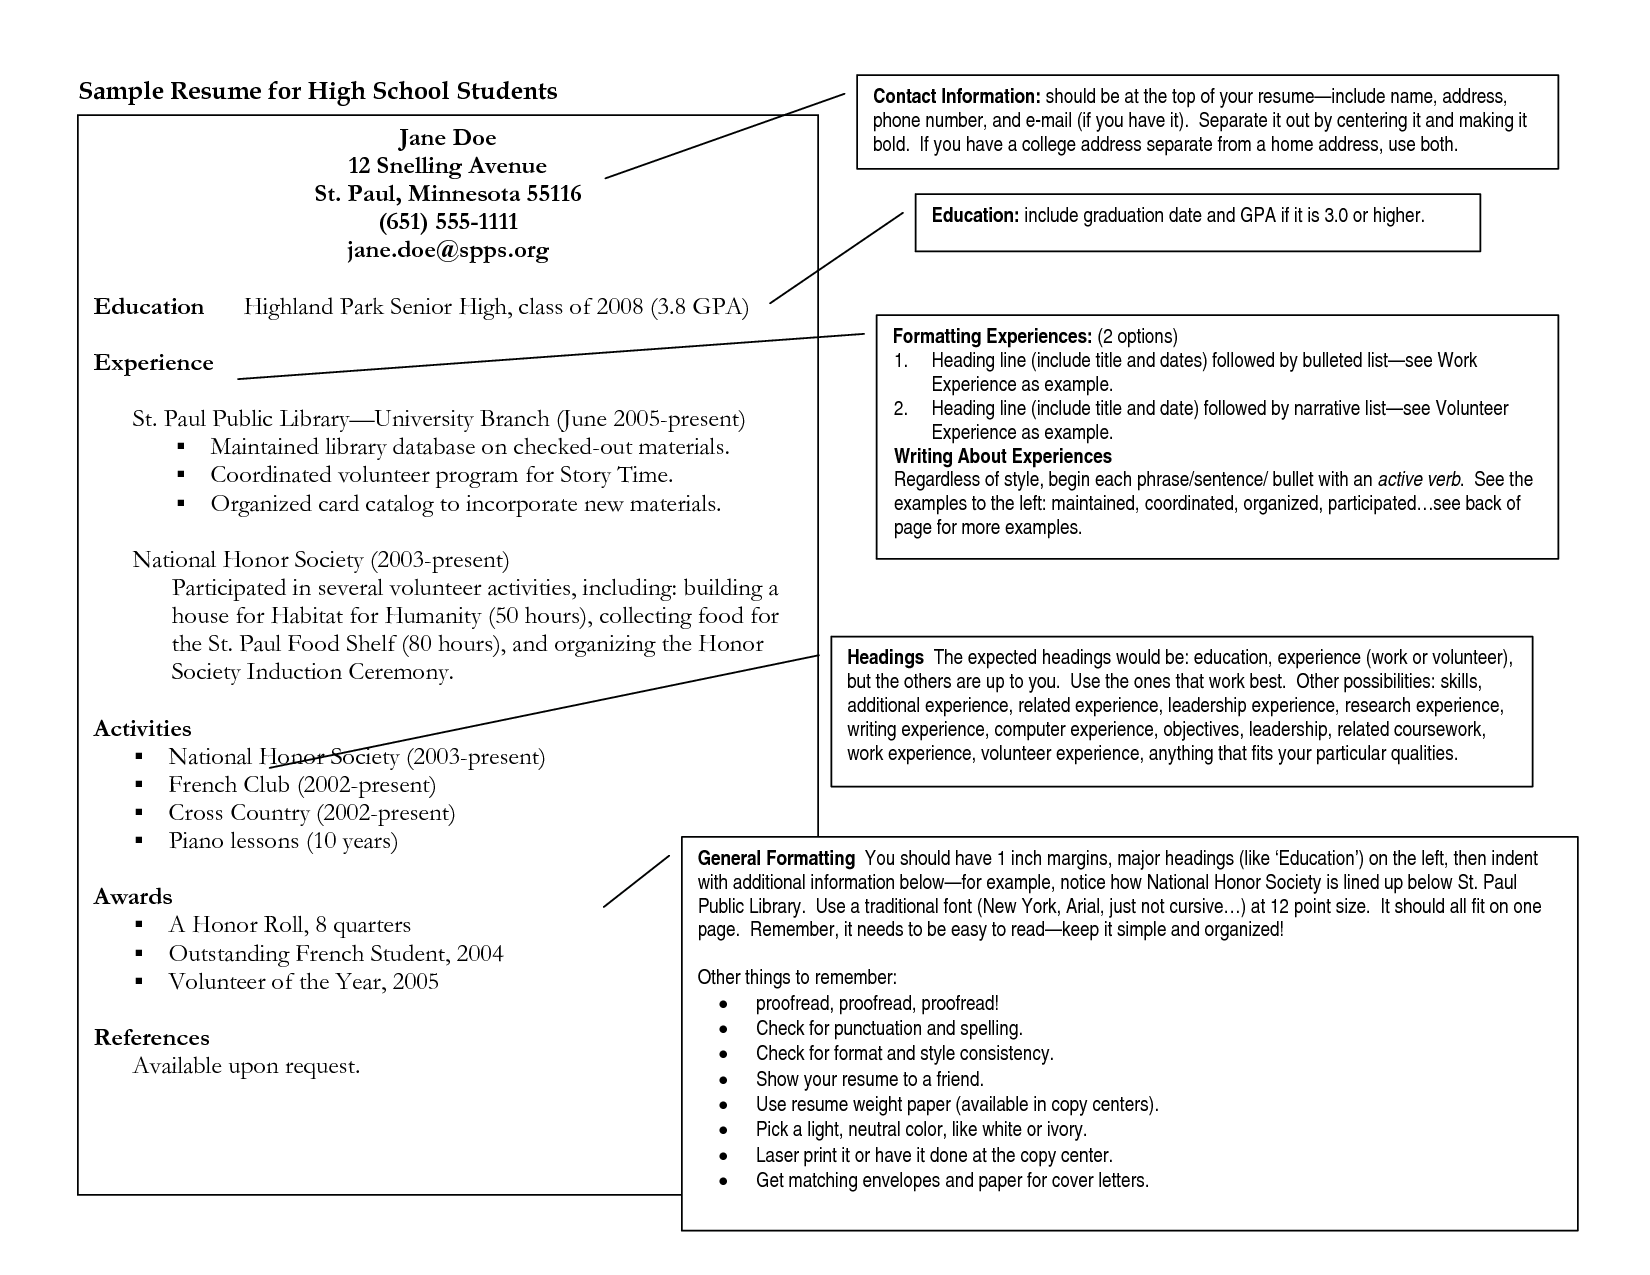 Sample Of Resume For High School Student Bridget Ferguson Bferguson1661 On Pinterest